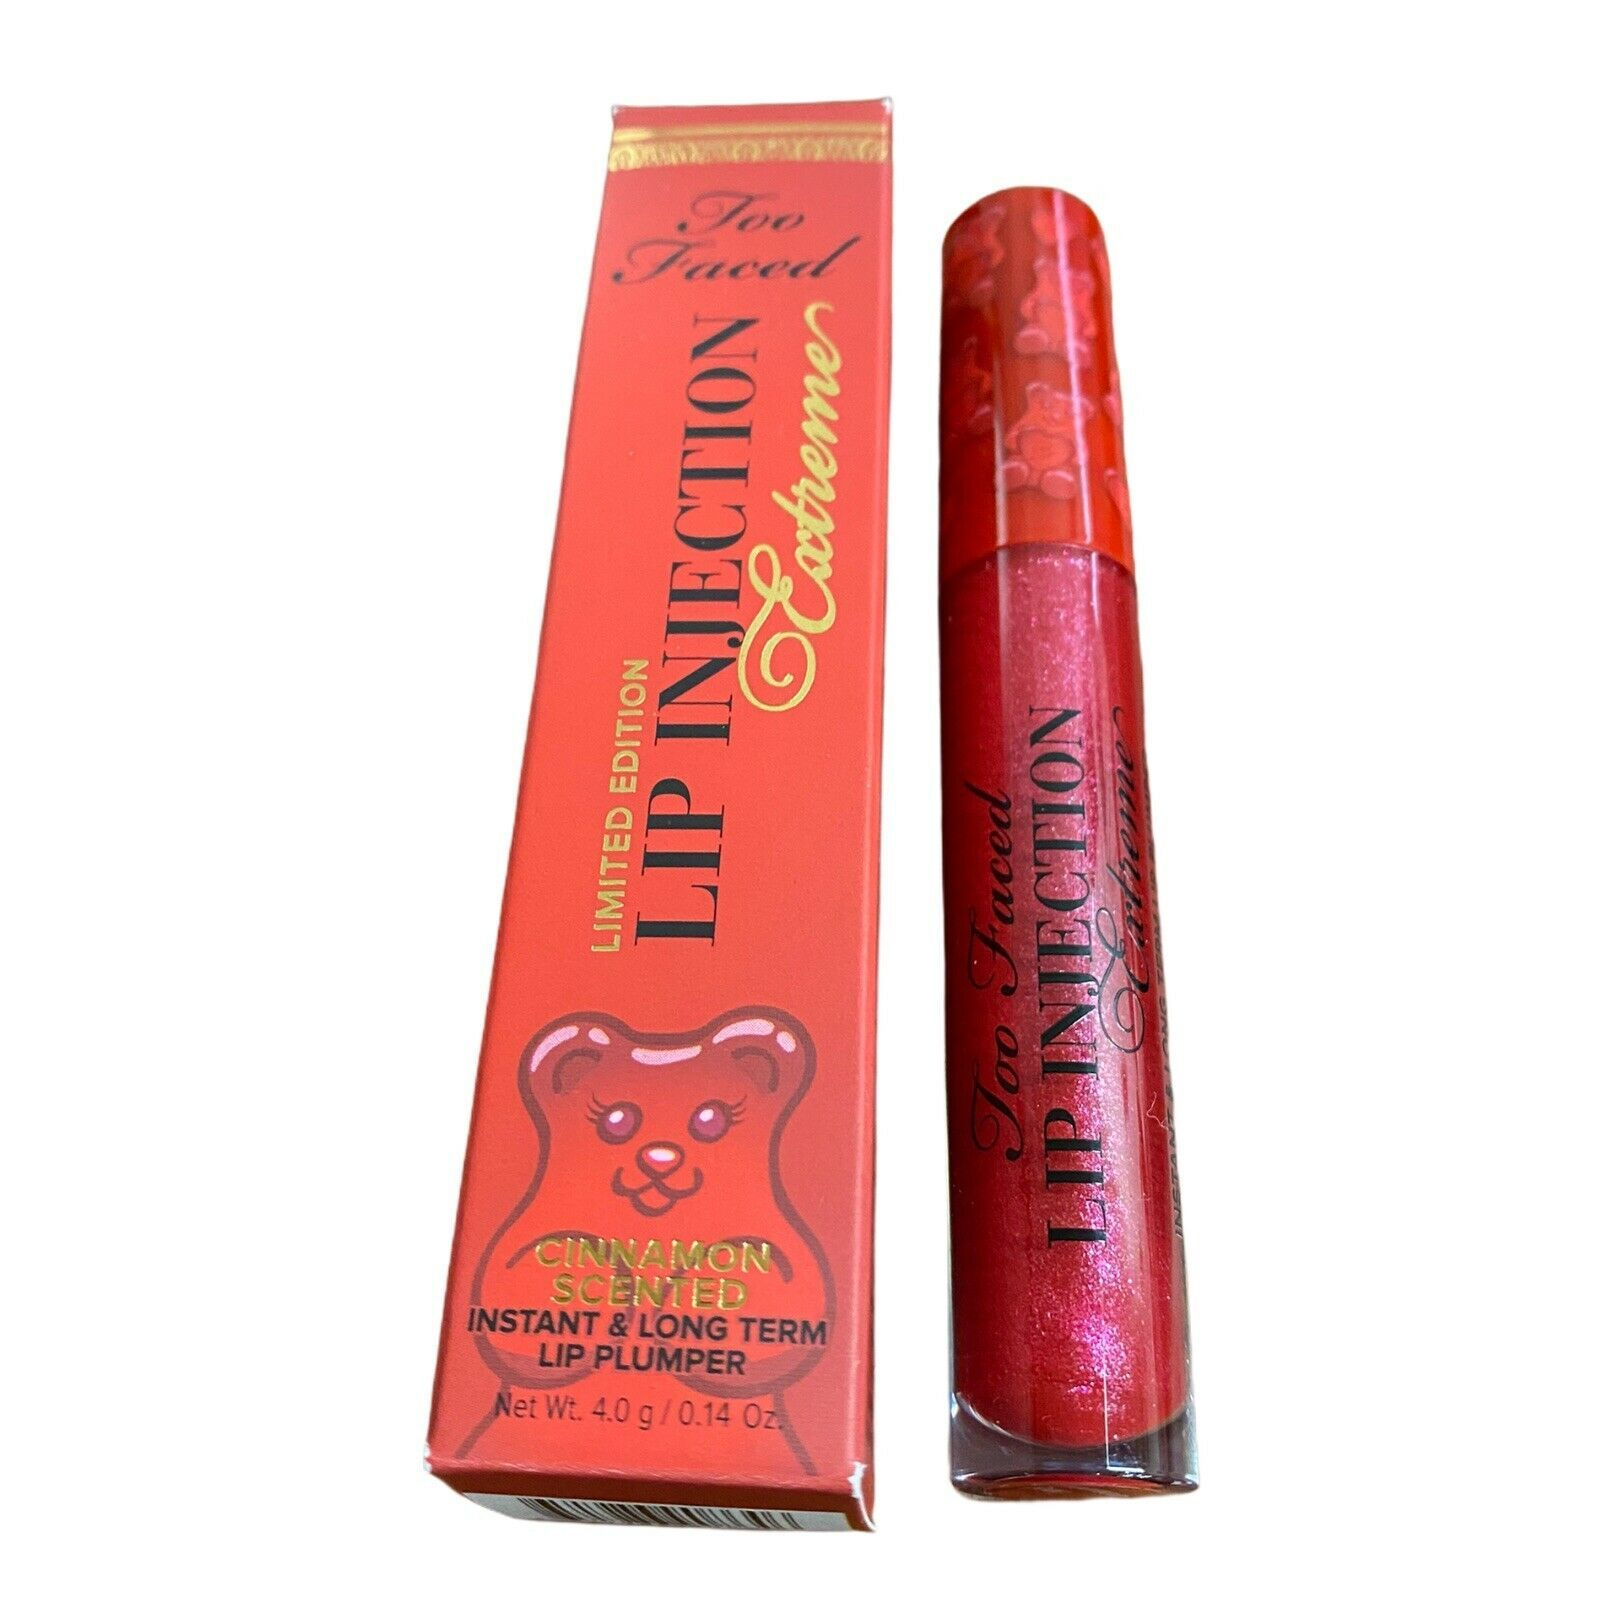 TOO FACED Lip Injection Extreme Cinnamon Bear Lip Plumper Gloss - $24.74